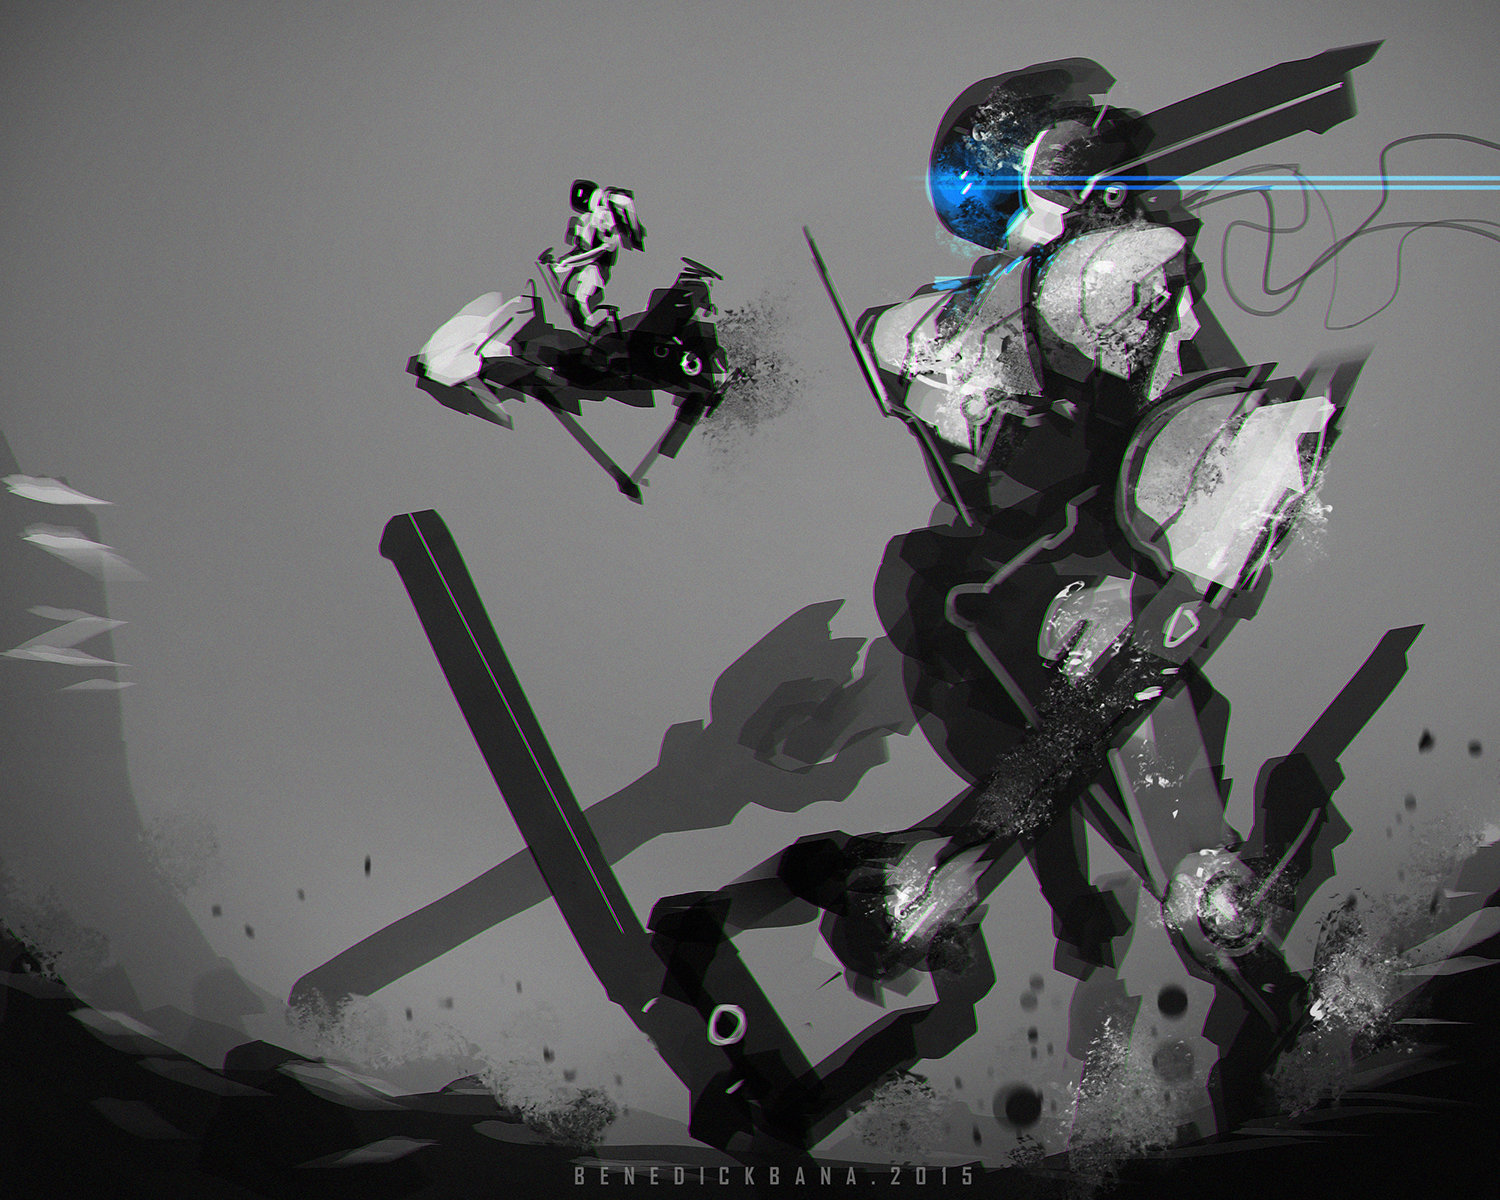 Benedick bana nasa mech and vehicles lores